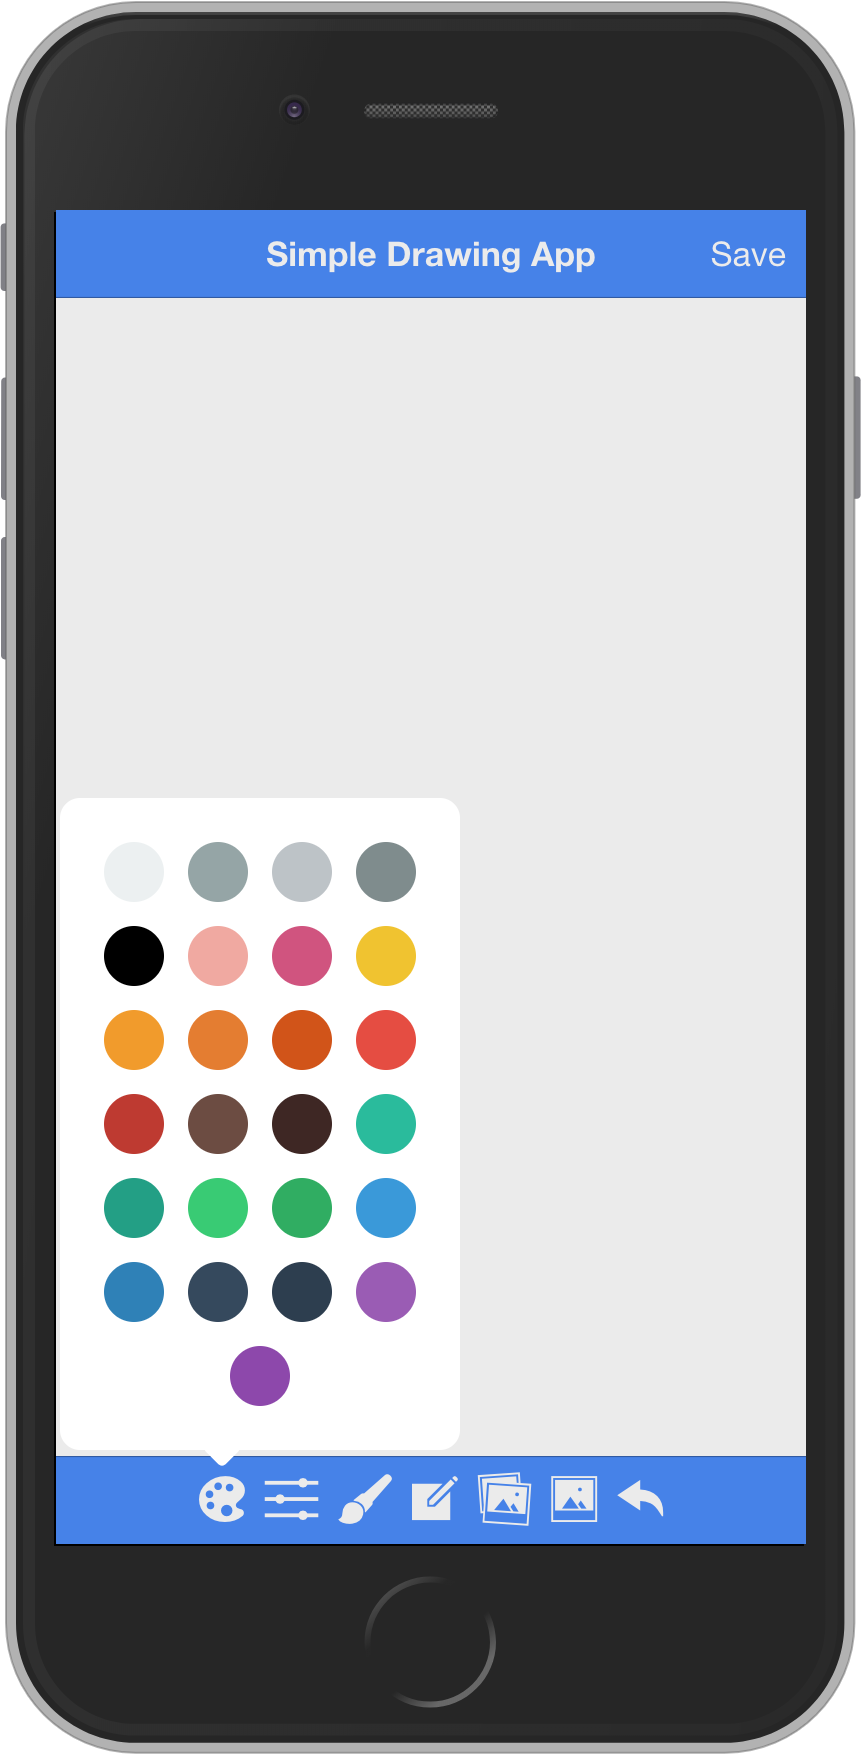 Simple-drawing-app-starter - Ionic Marketplace